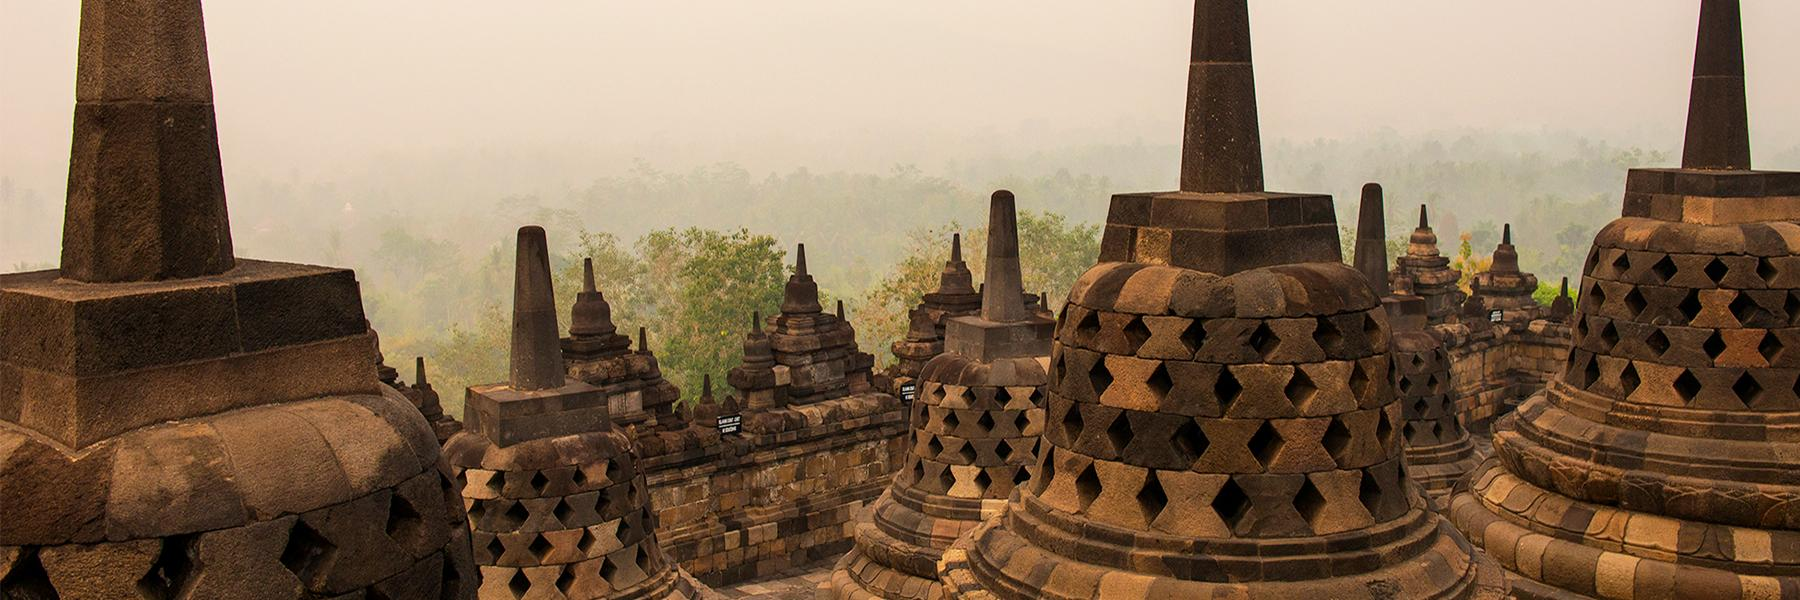 Why Visit Borobudur?